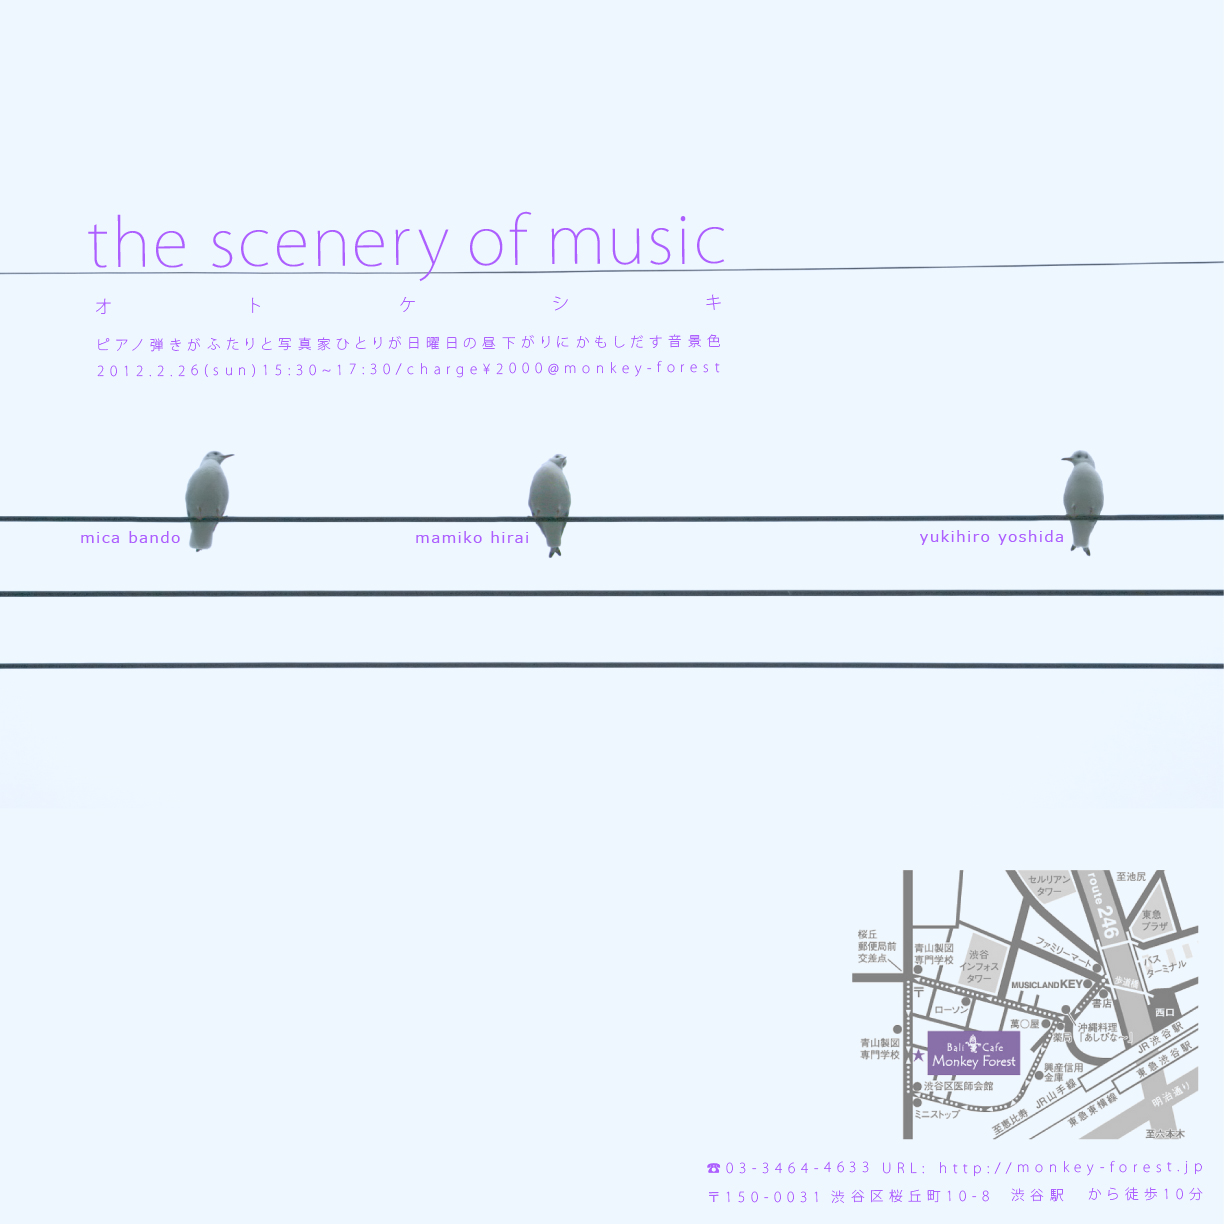 the scenery of music